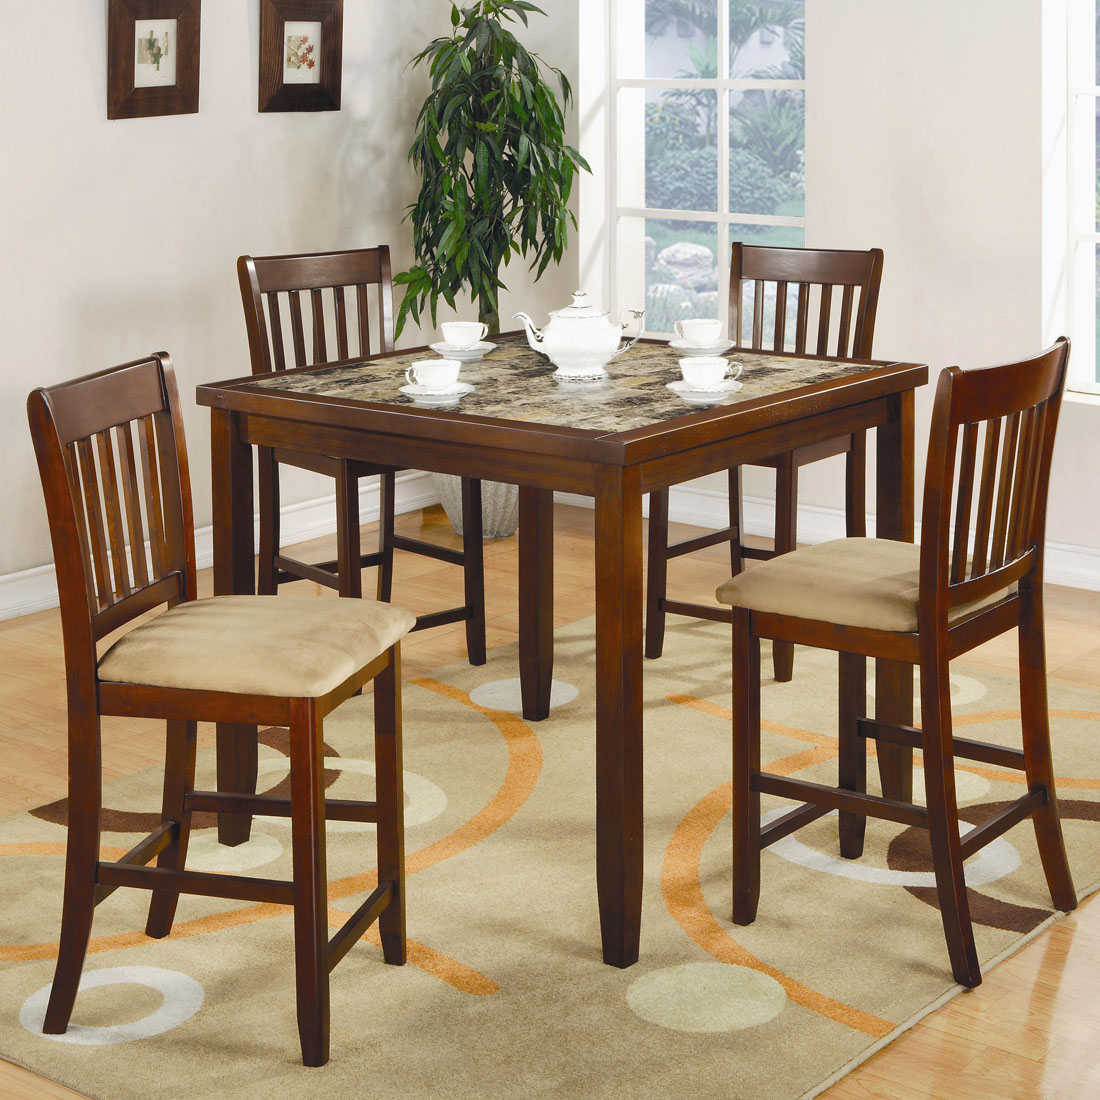 Superb img of Normandie 5 Piece Square Counter Height Dining Set Marjen of Chicago  with #623A1F color and 1100x1100 pixels